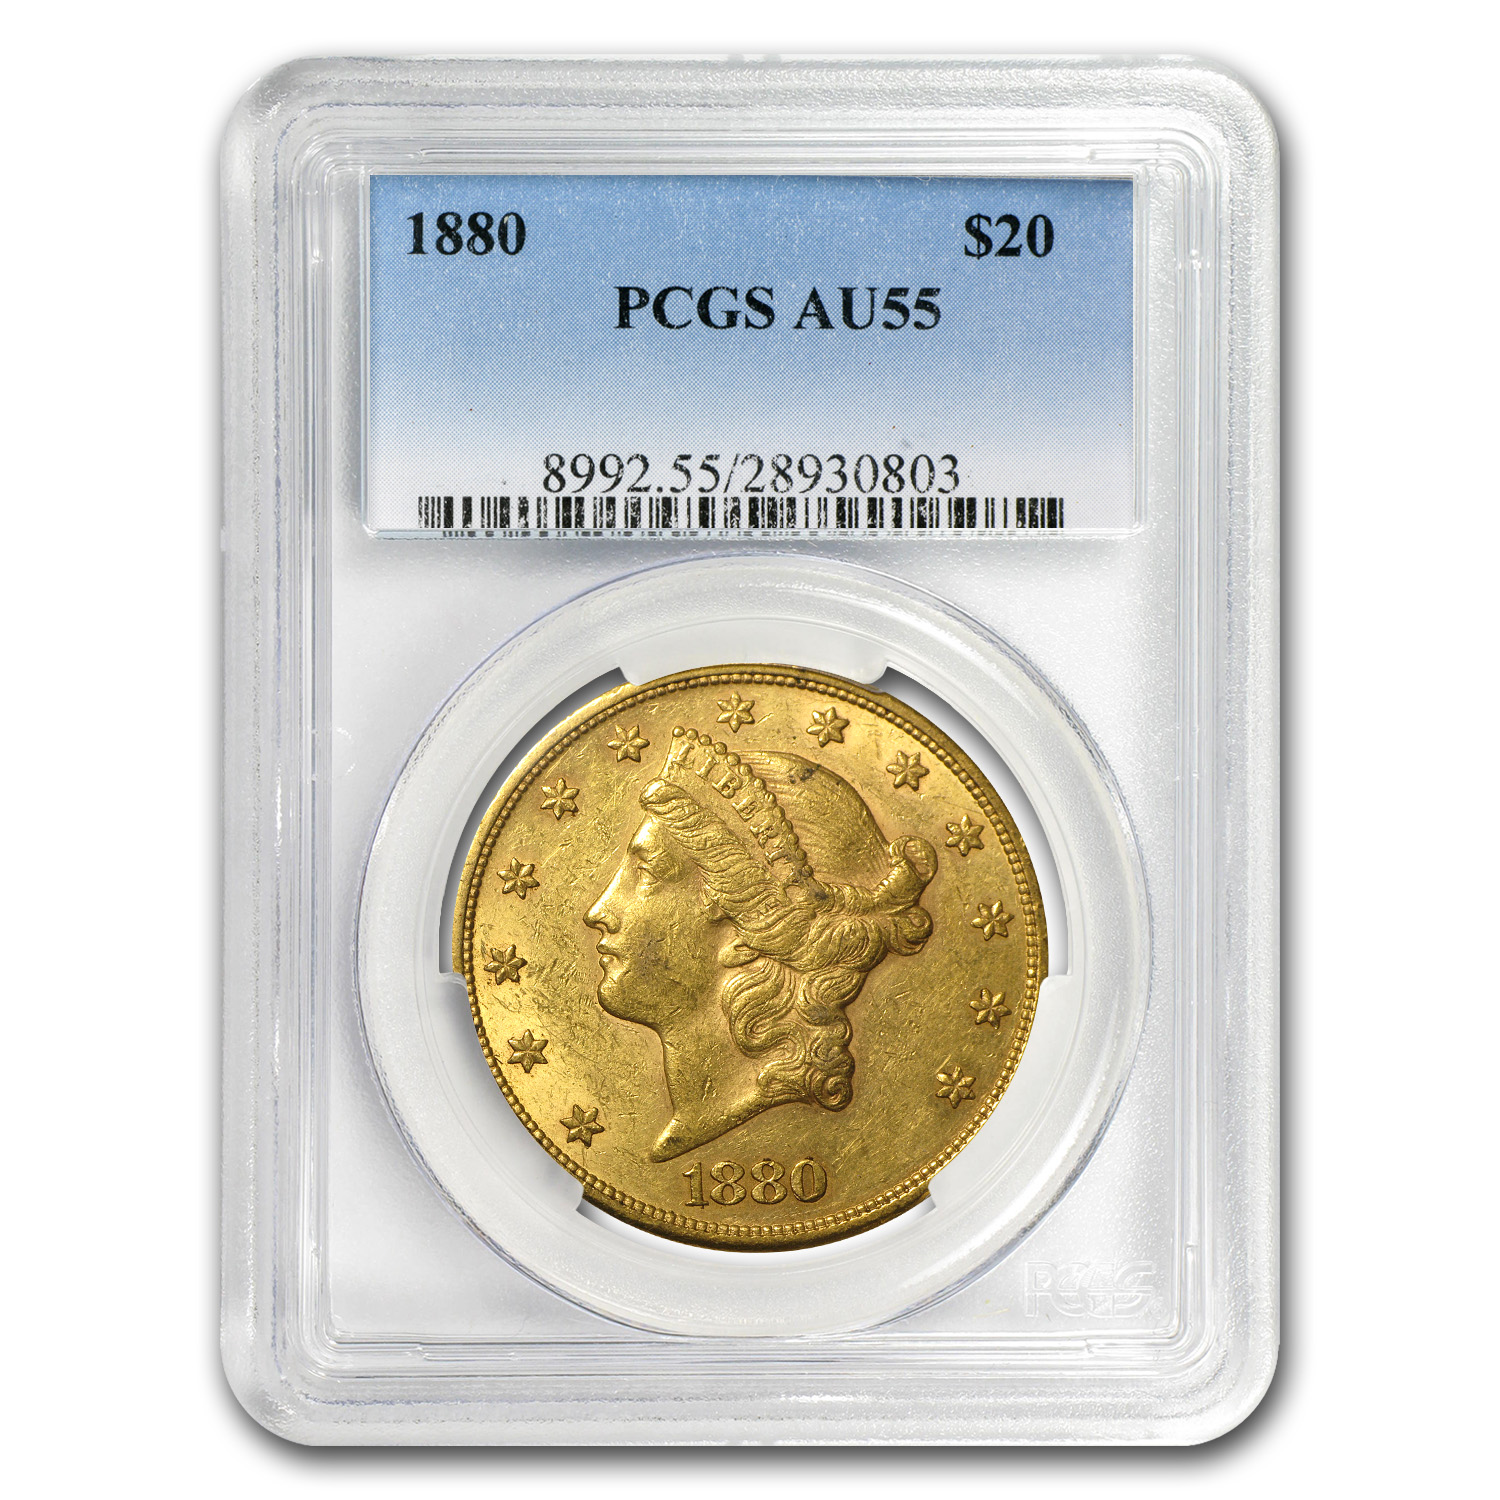 1880 $20 Gold Liberty Double Eagle - AU-55 PCGS